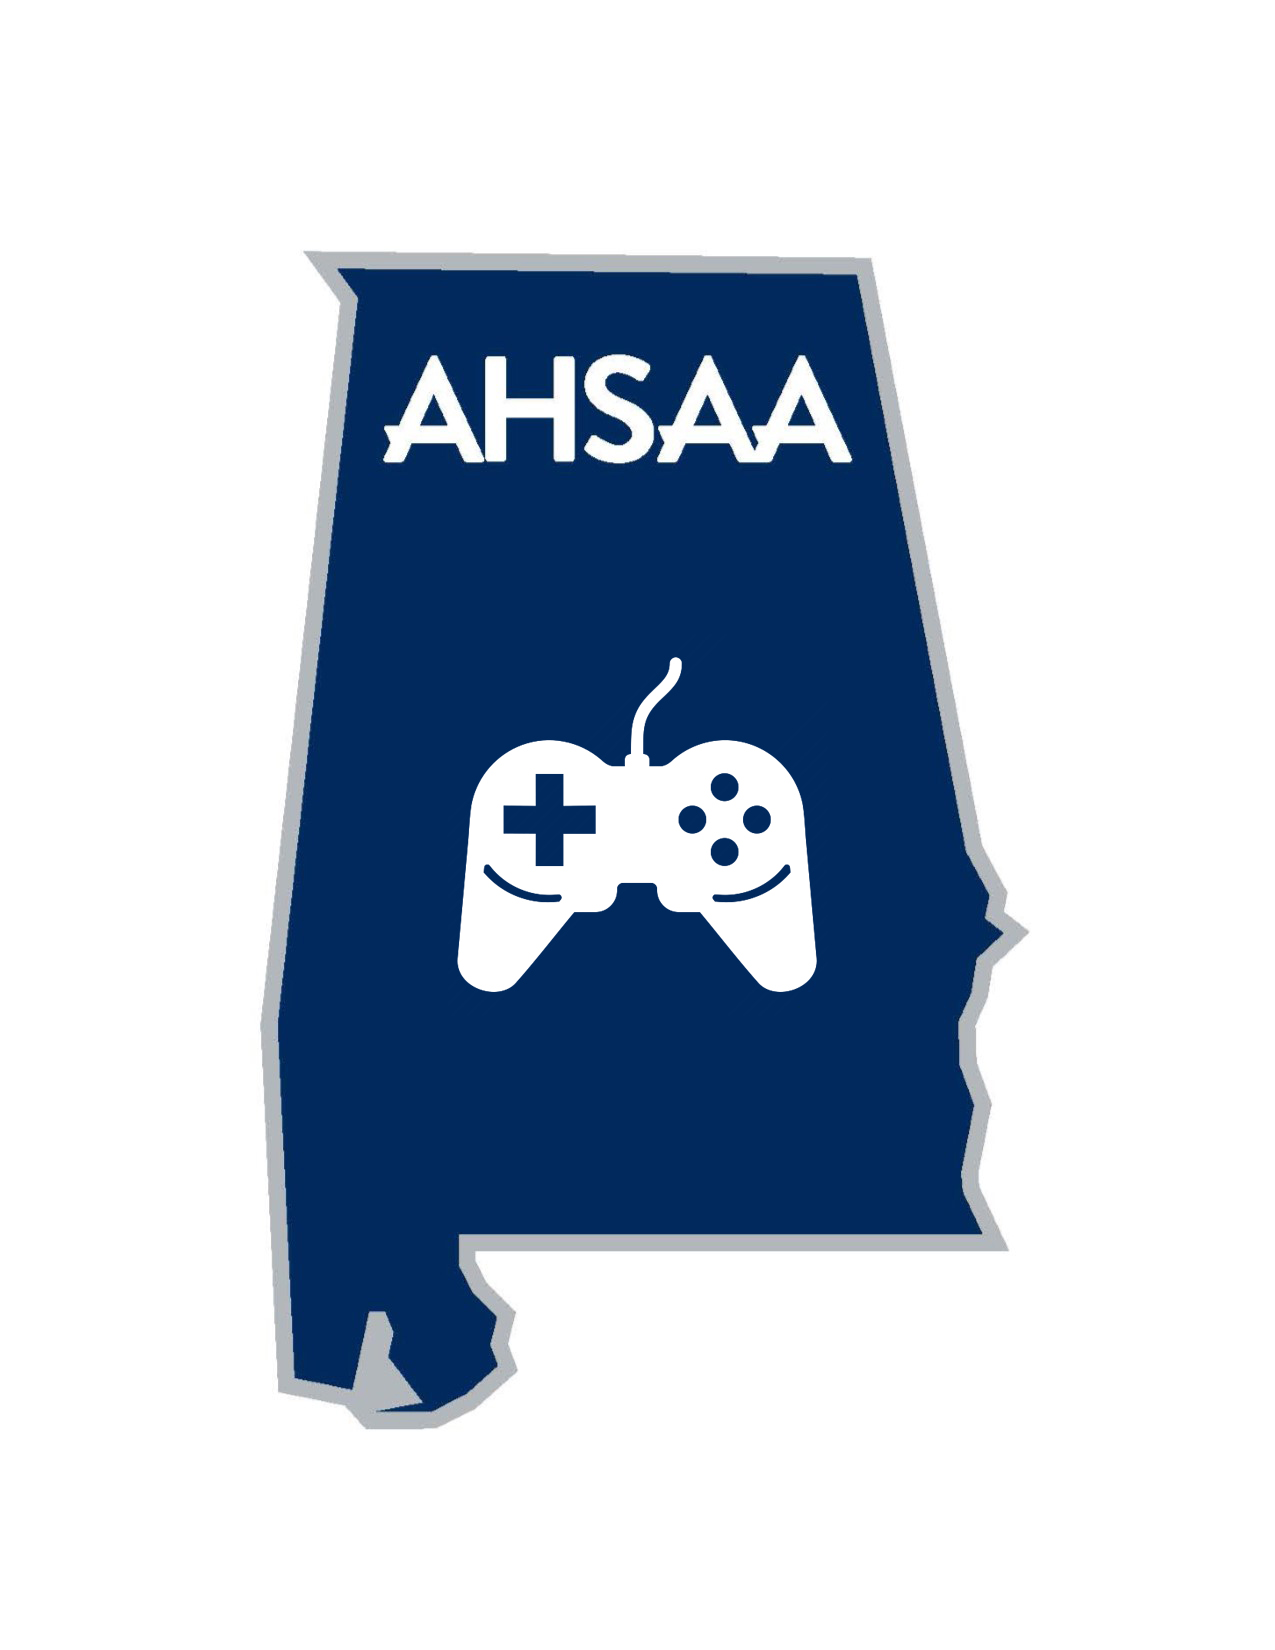 Spain Park, Grissom Set to Defend Championships as AHSAA Begins Second Year of esports Competition